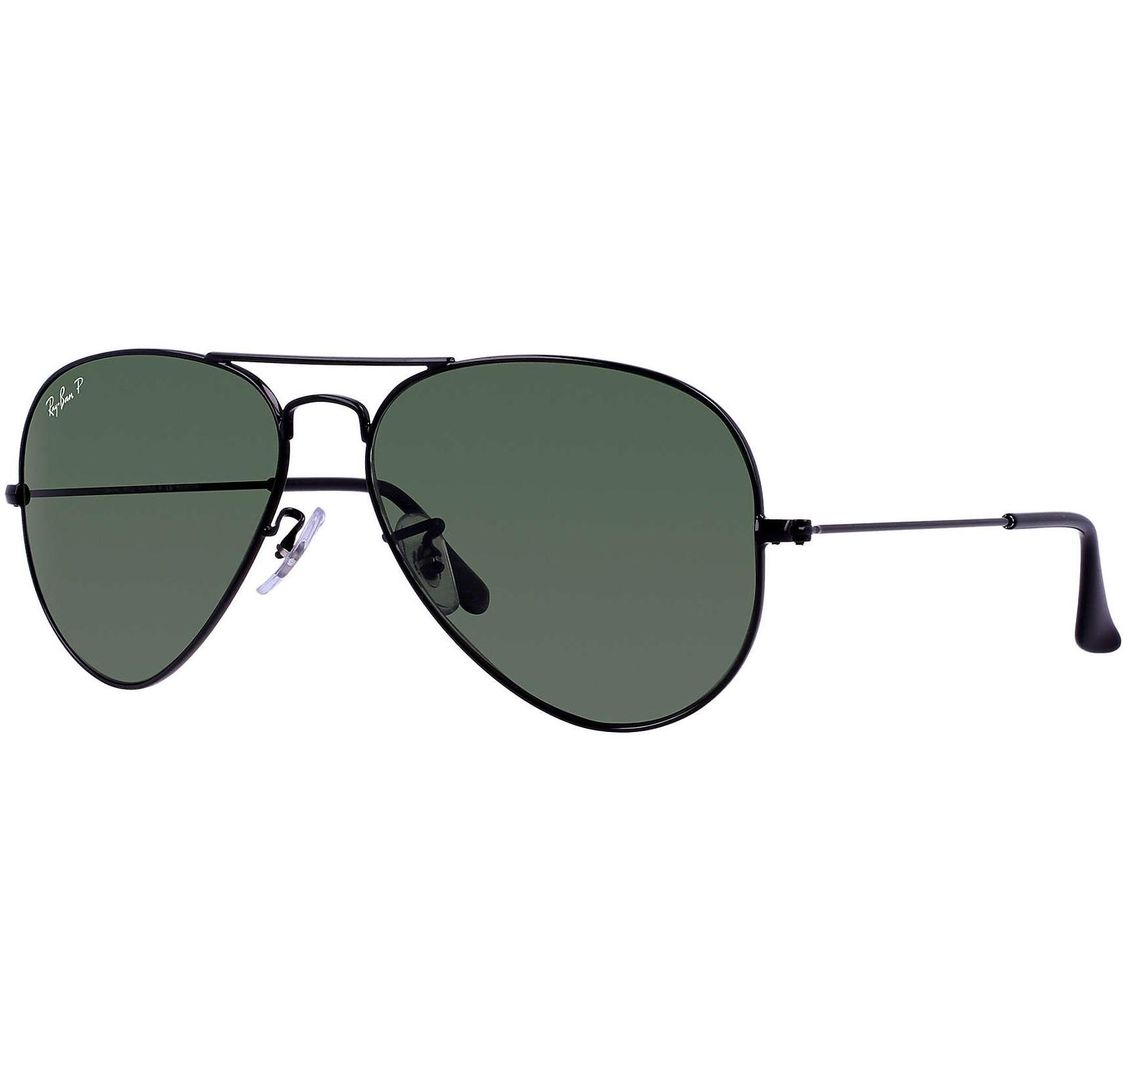 Buy Ray-ban Avaitor Classic Black/green Classic Lens in Dubai at cheap price